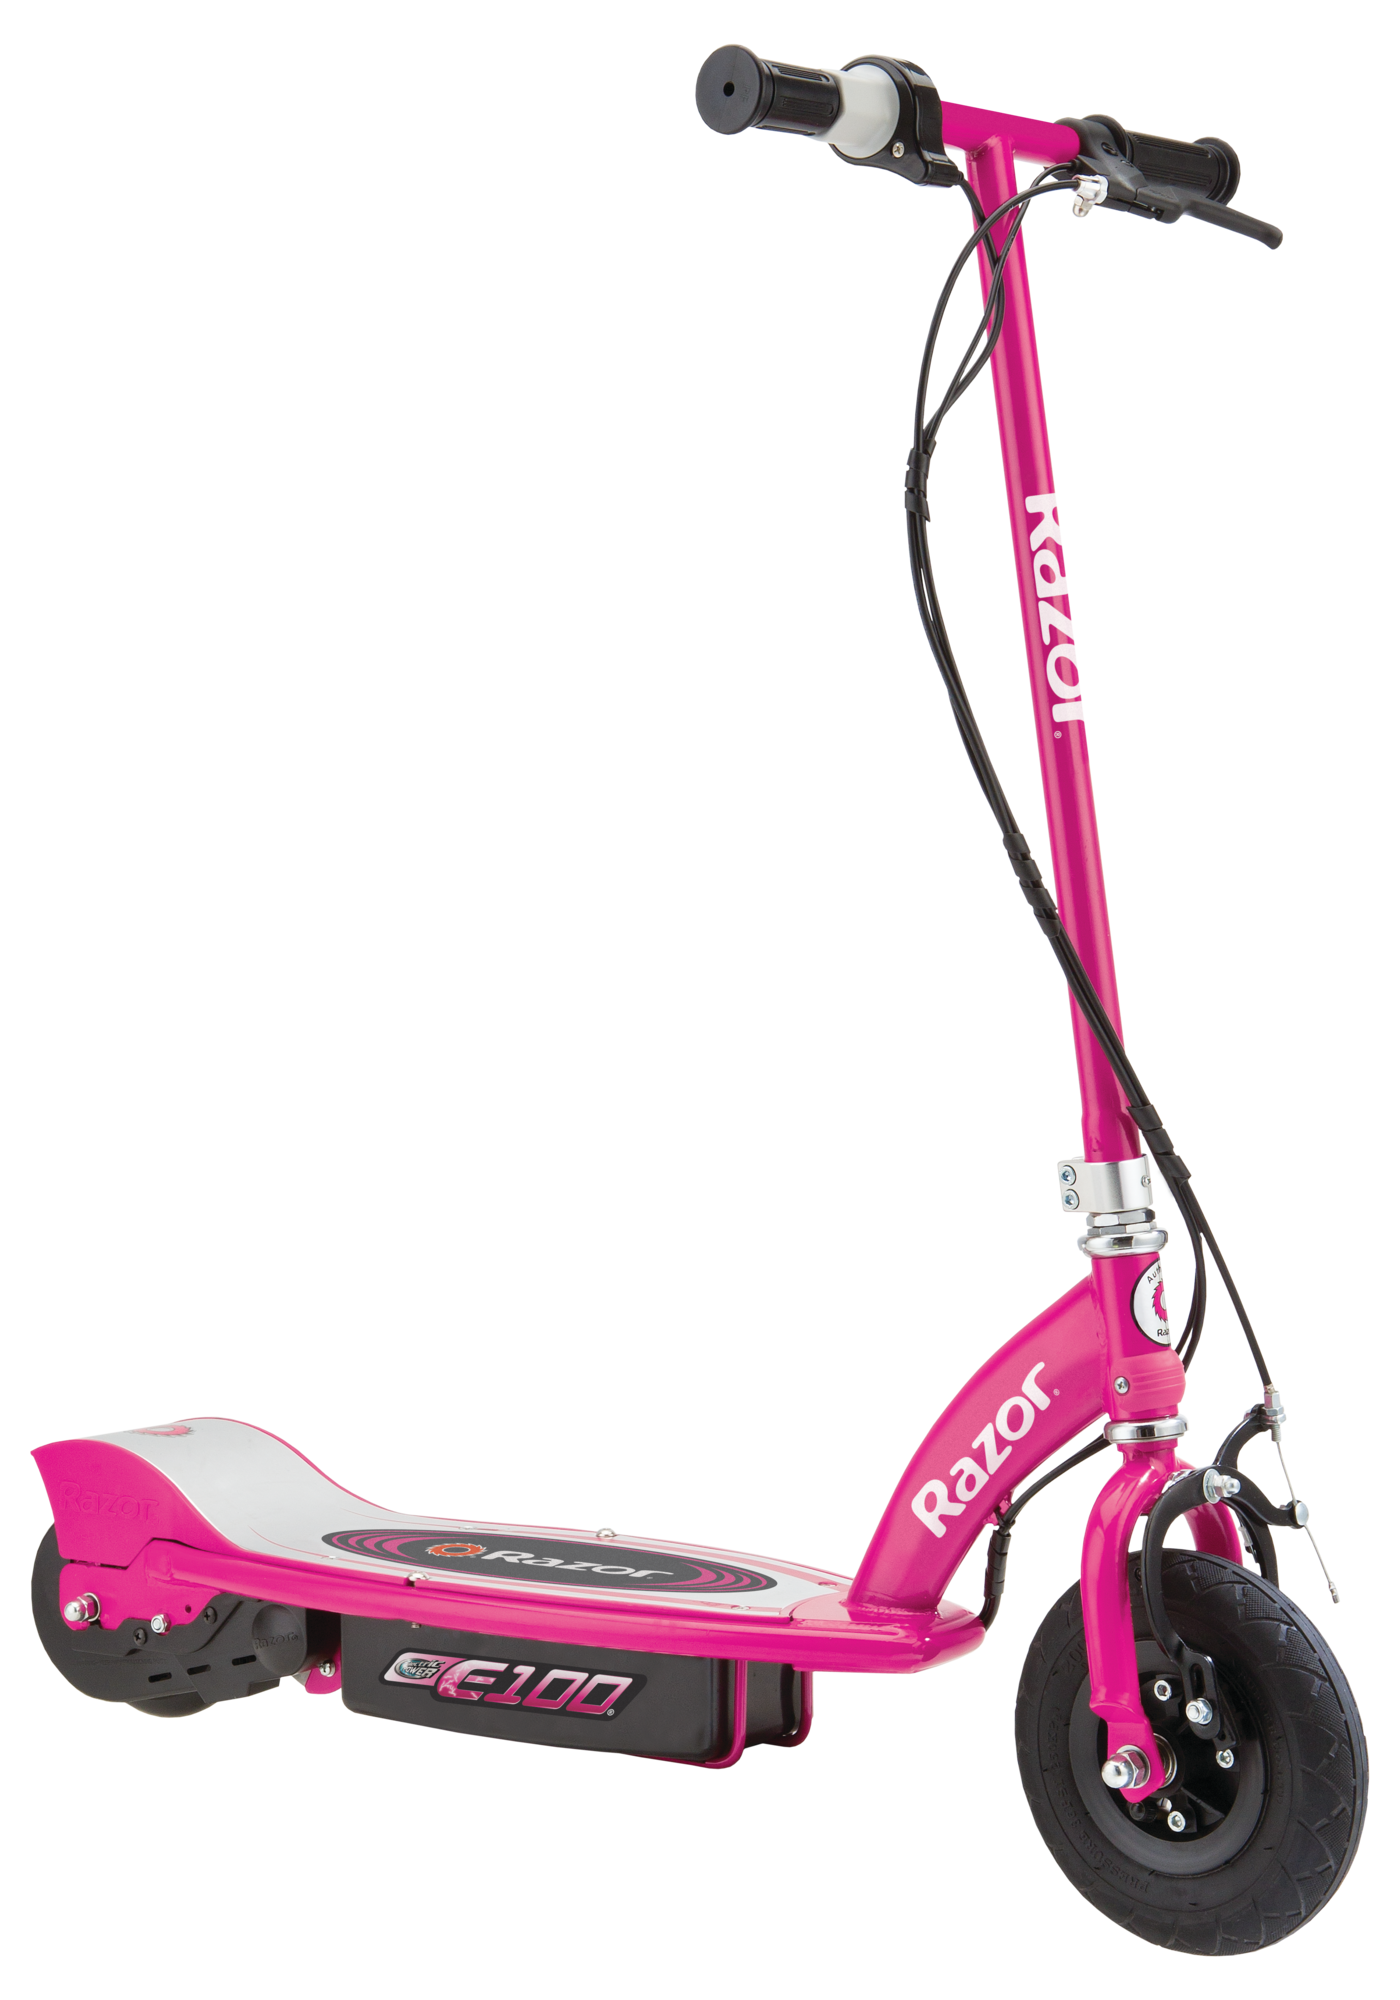 electric scooter razor #37132